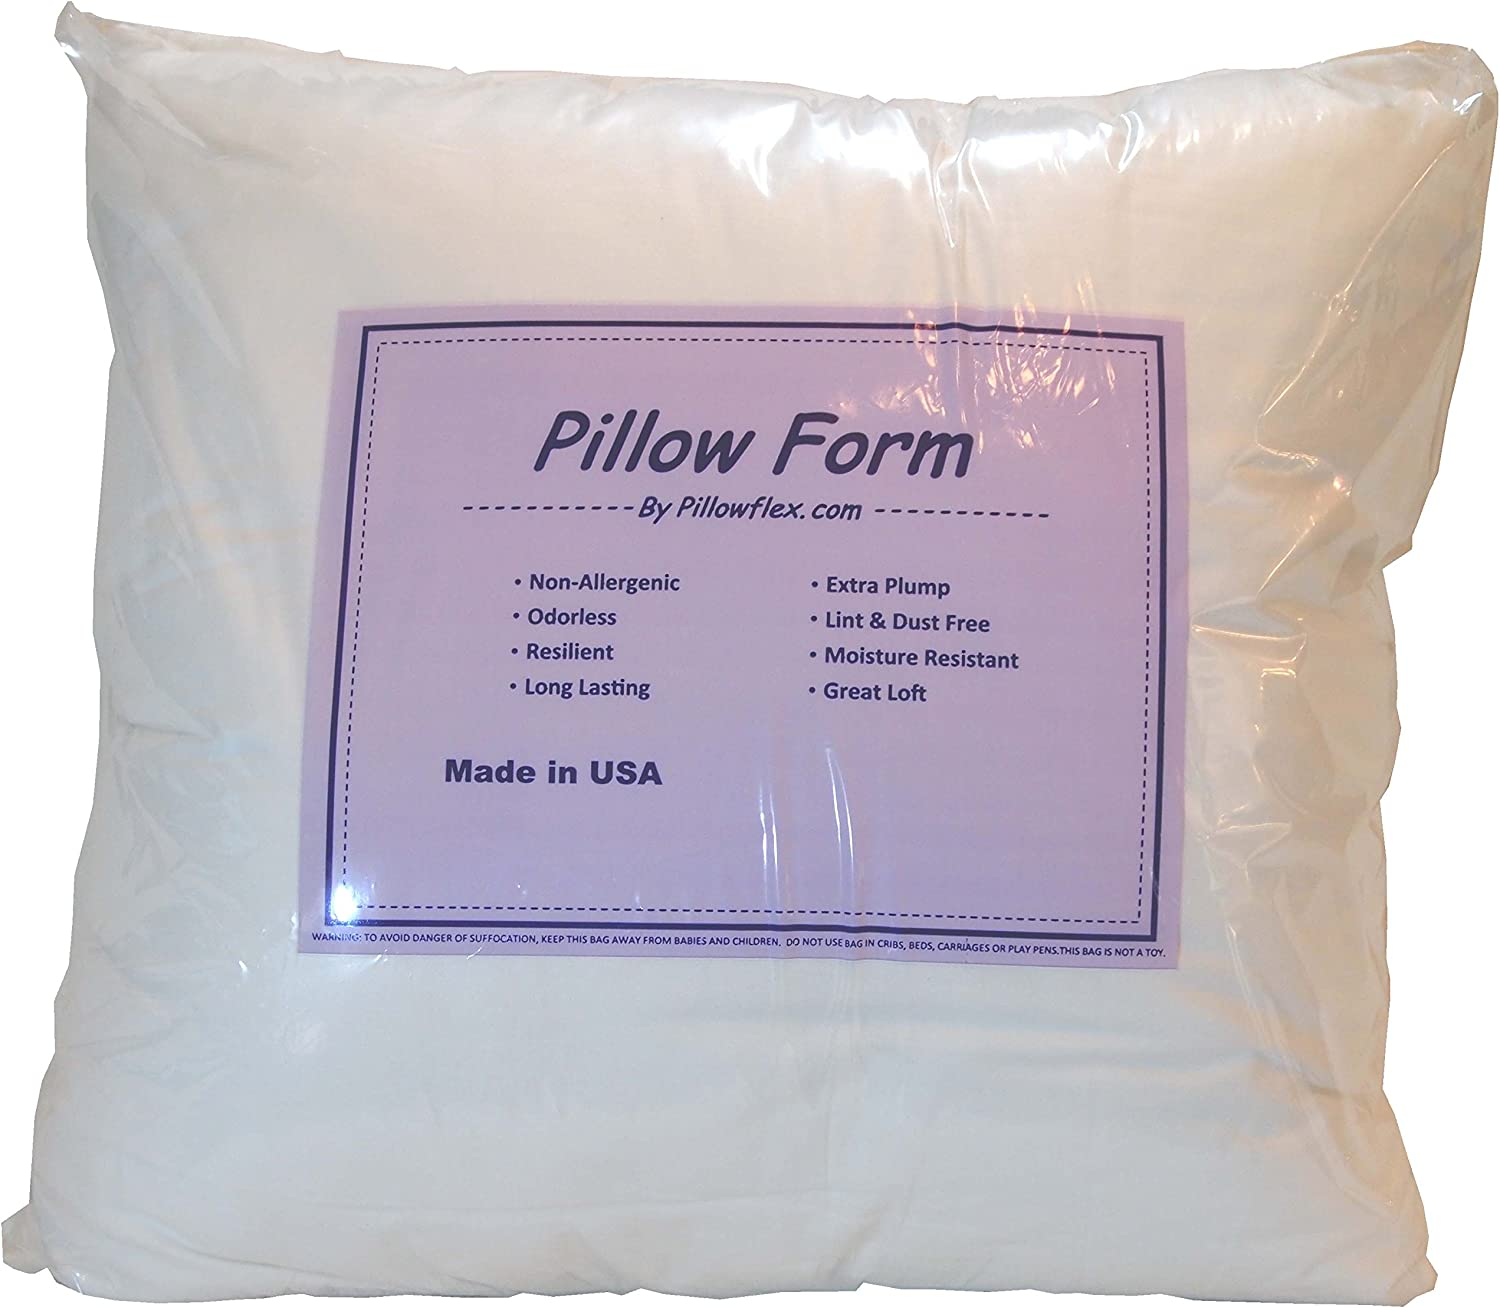 Pillowflex 16x16NW Indoor//Outdoor Non 16-Inch by 16-Inch Woven Pillow Form Insert for Shams or Decorative Pillow Covers